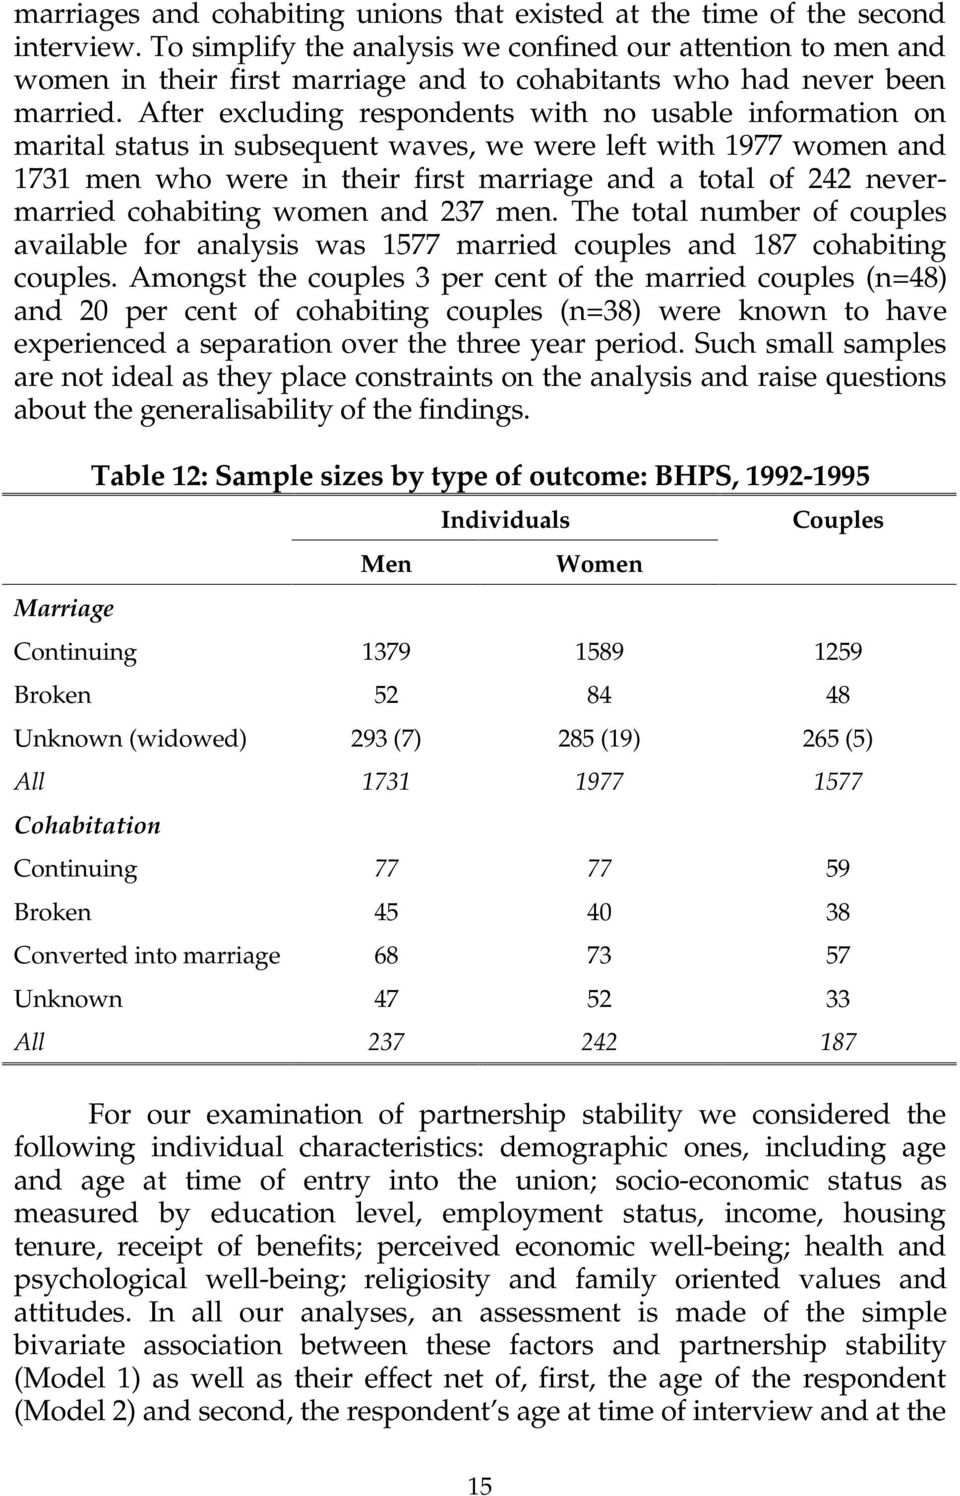 After excluding respondents with no usable information on marital status in subsequent waves, we were left with 1977 women and 1731 men who were in their first marriage and a total of 242